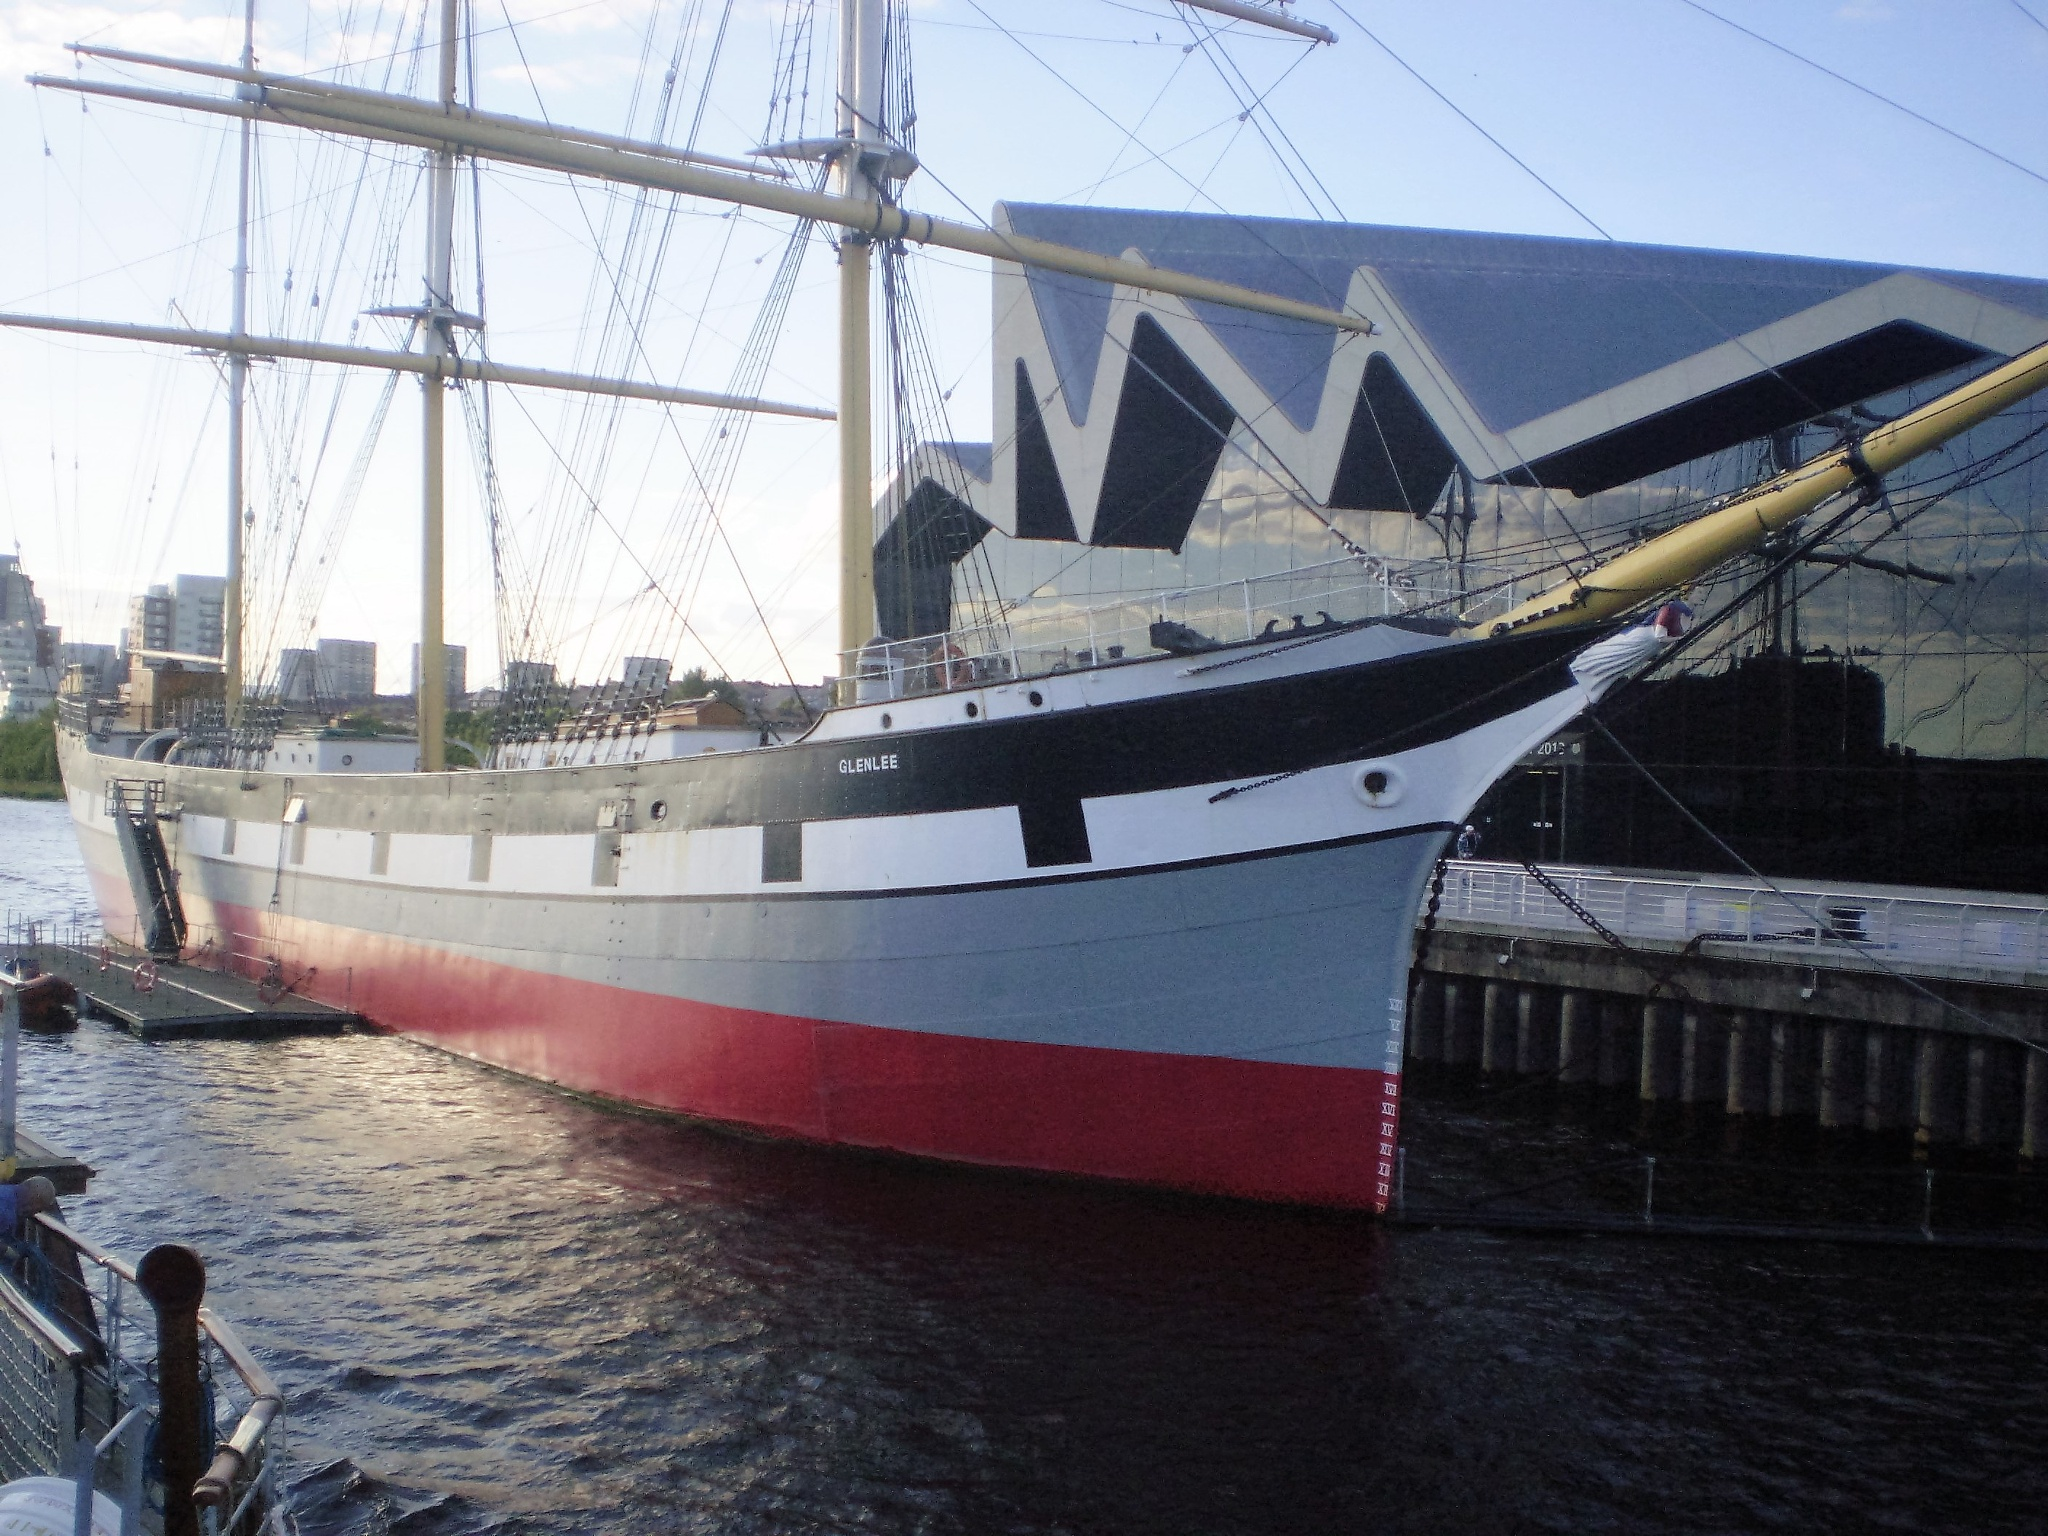 sailing ship on the clyde by BOB PENTLAND